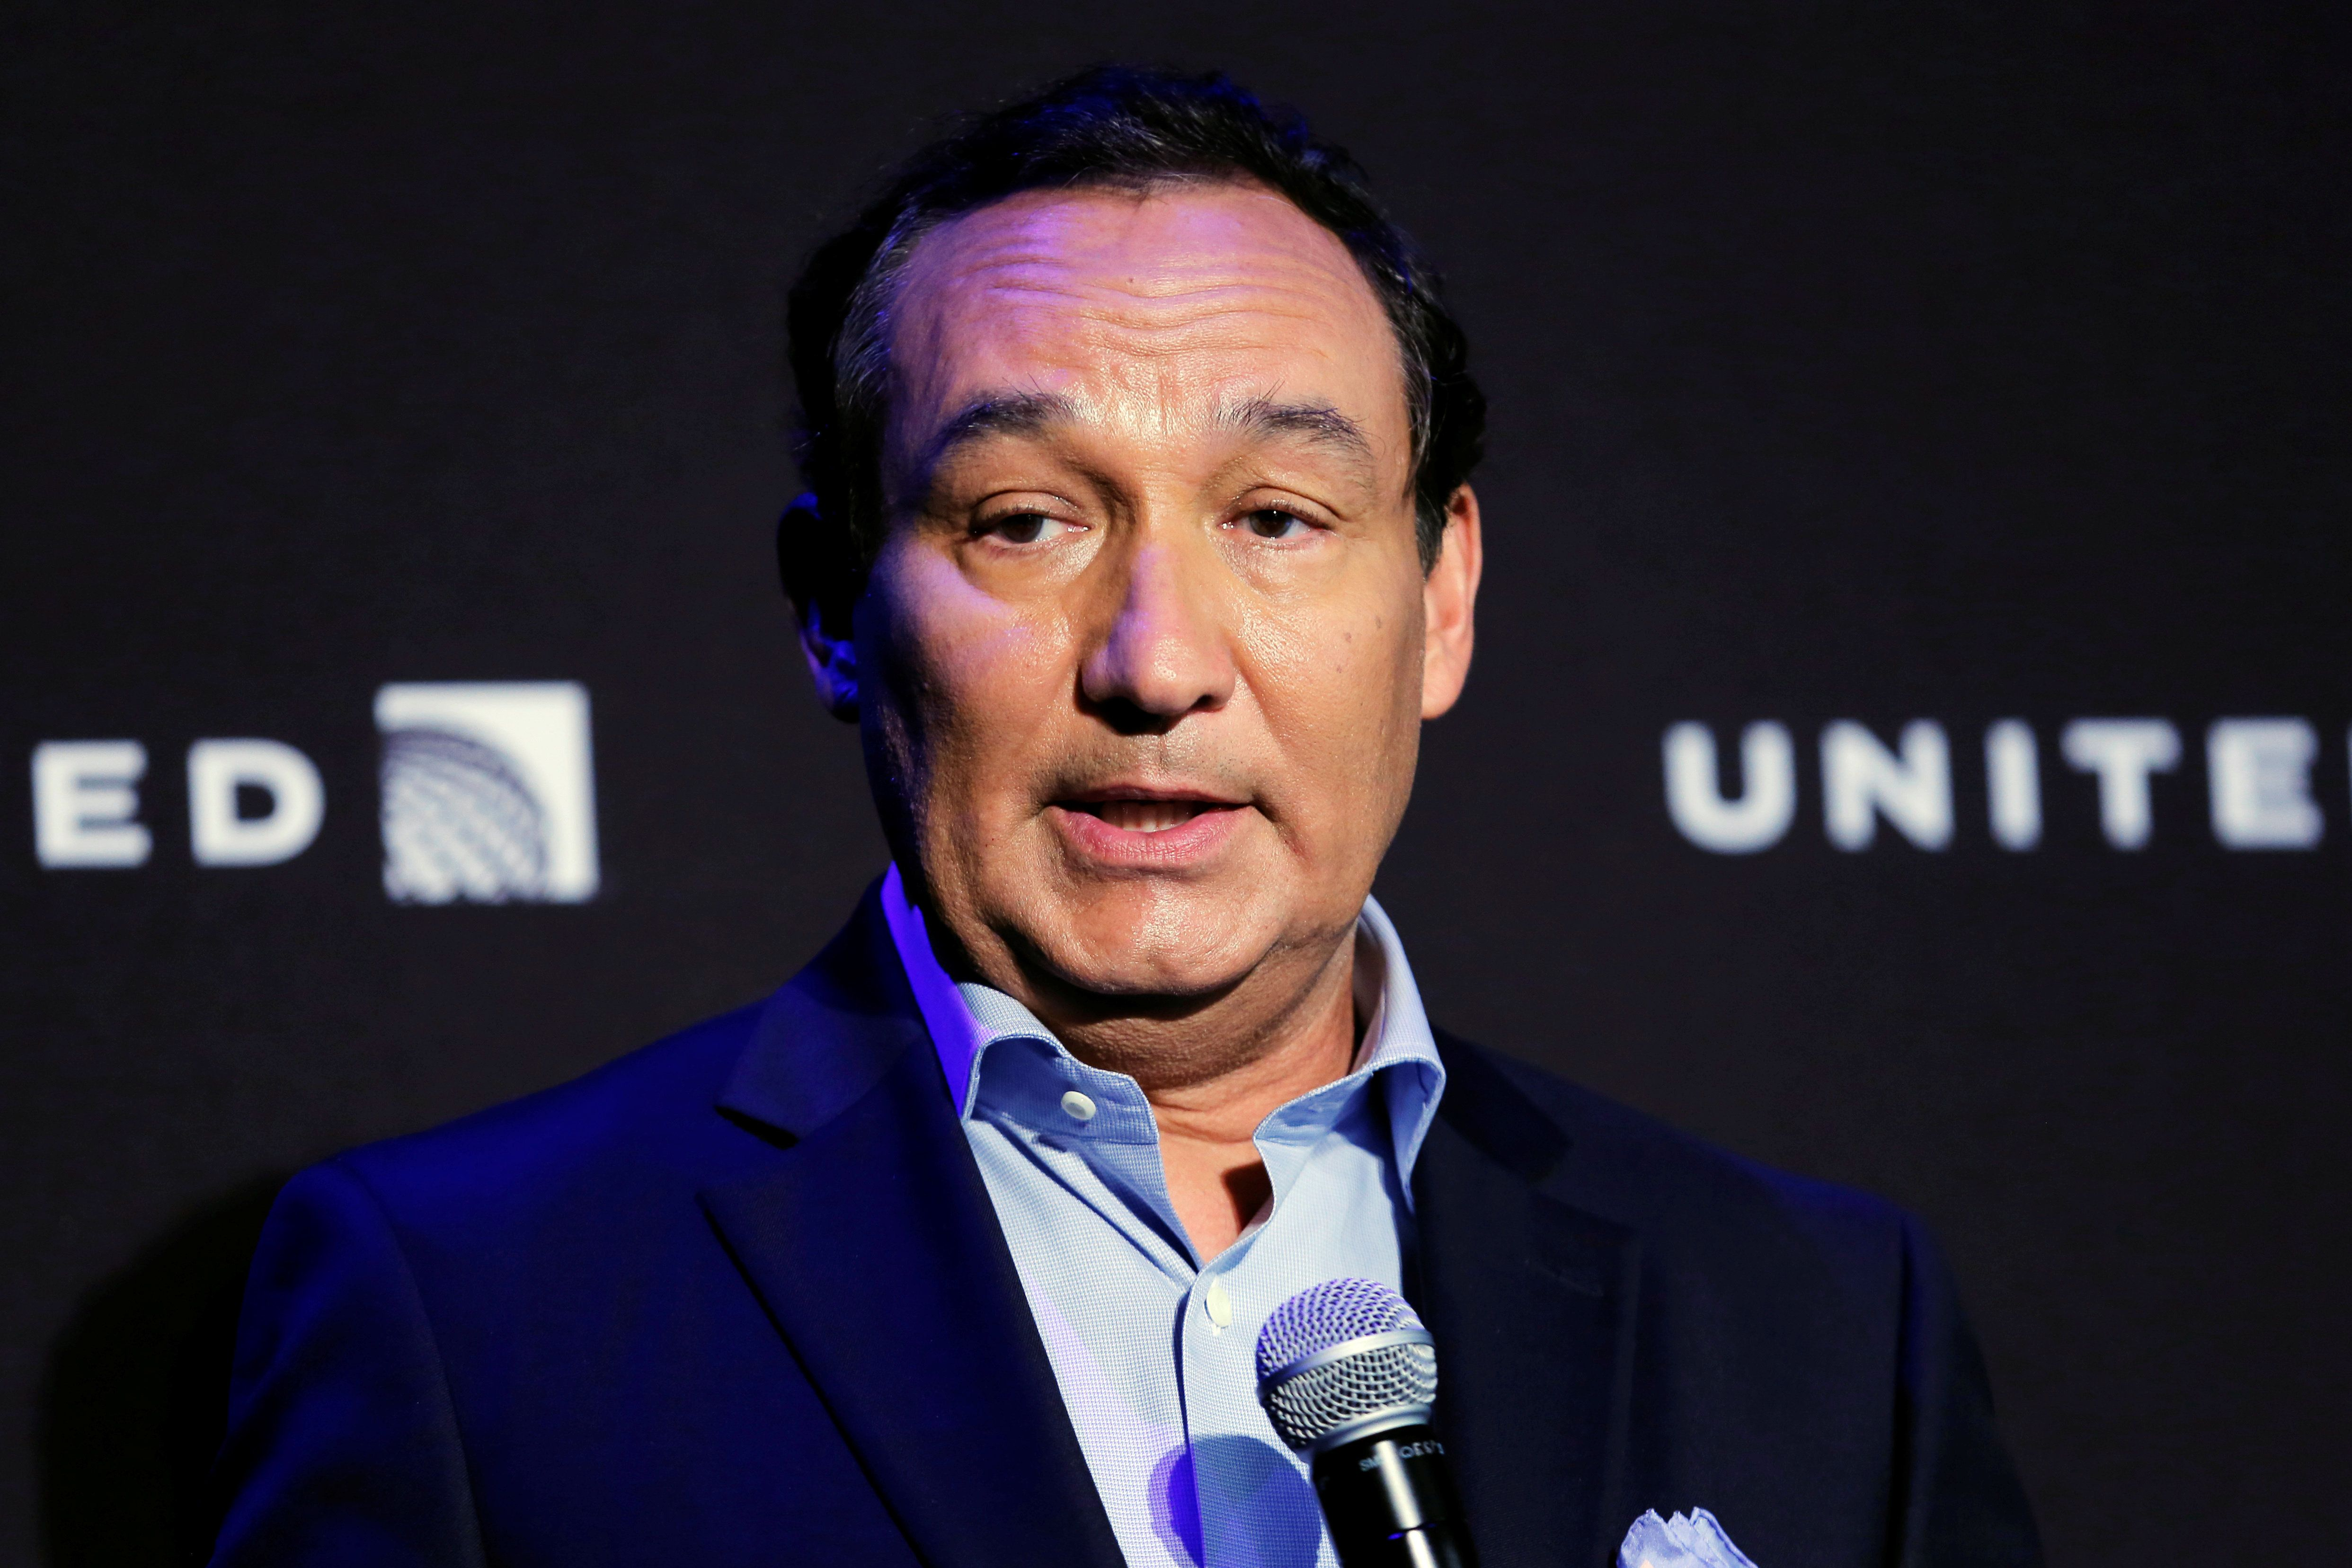 Chief Executive Officer of United Airlines Oscar Munoz introduces a new international business class dubbed United Polaris in New York, U.S. June 2, 2016. REUTERS/Lucas Jackson